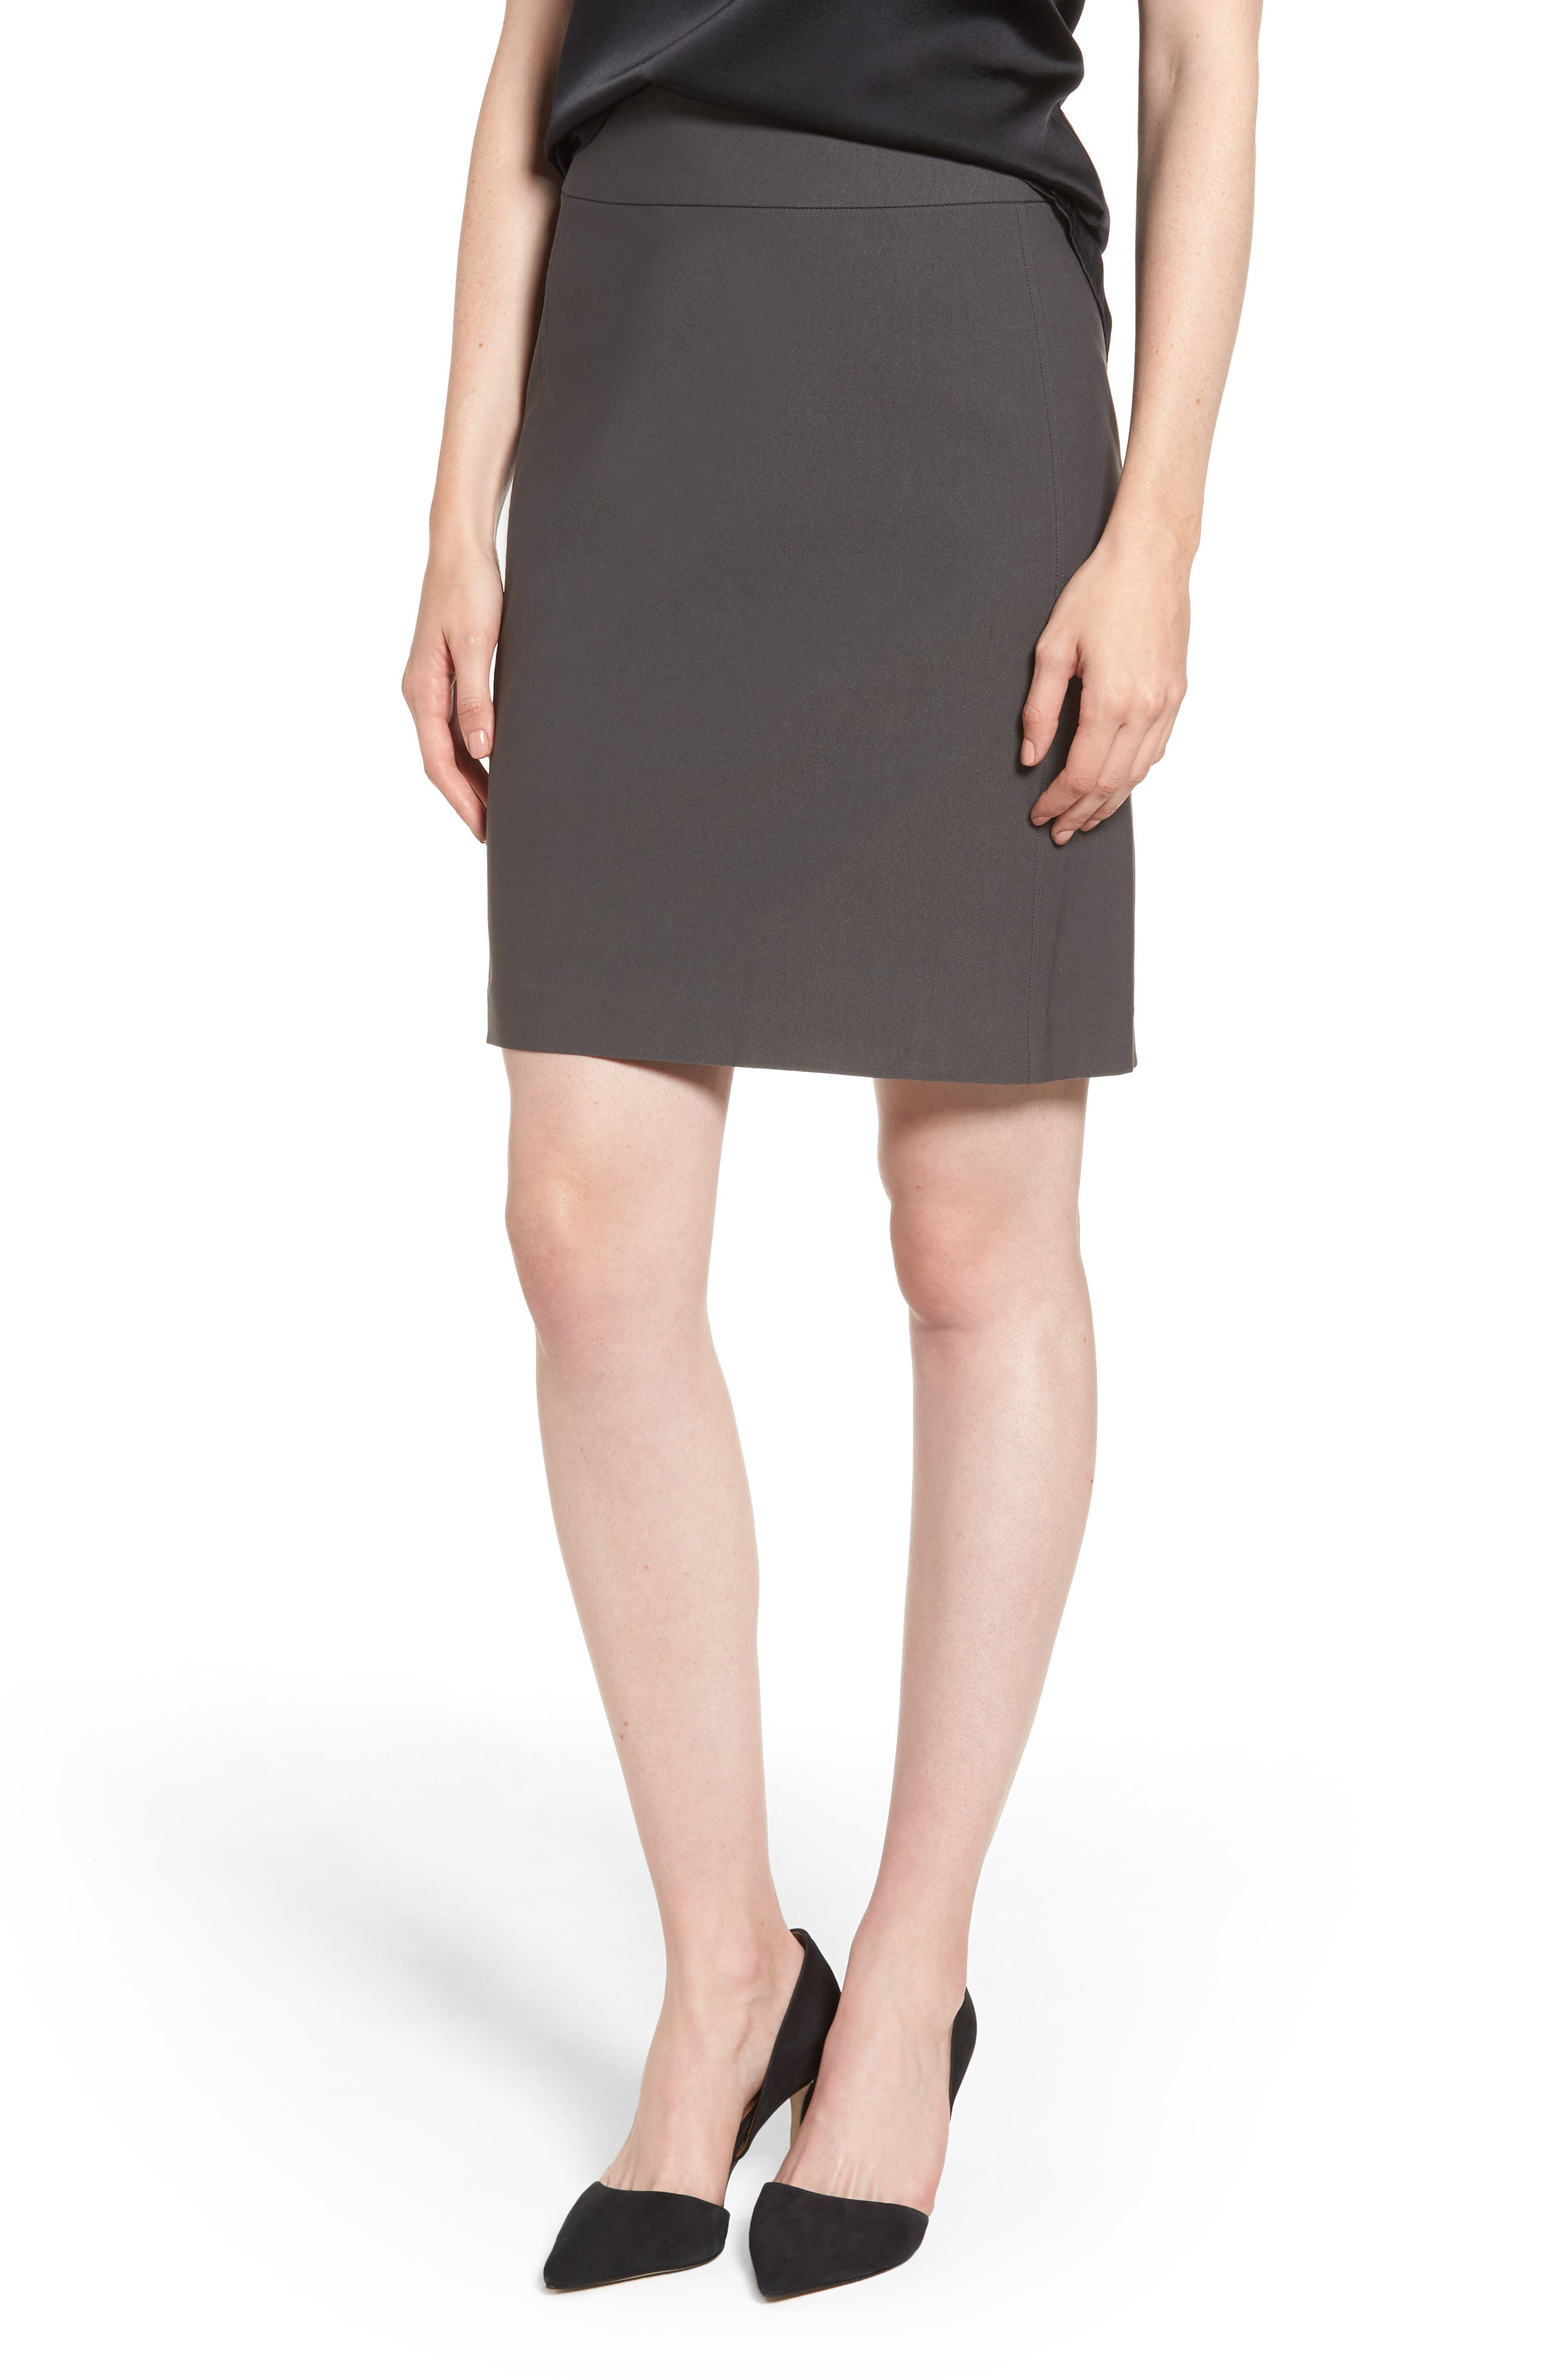 Wonderstretch Skirt,                         Main,                         color, GRAPHITE